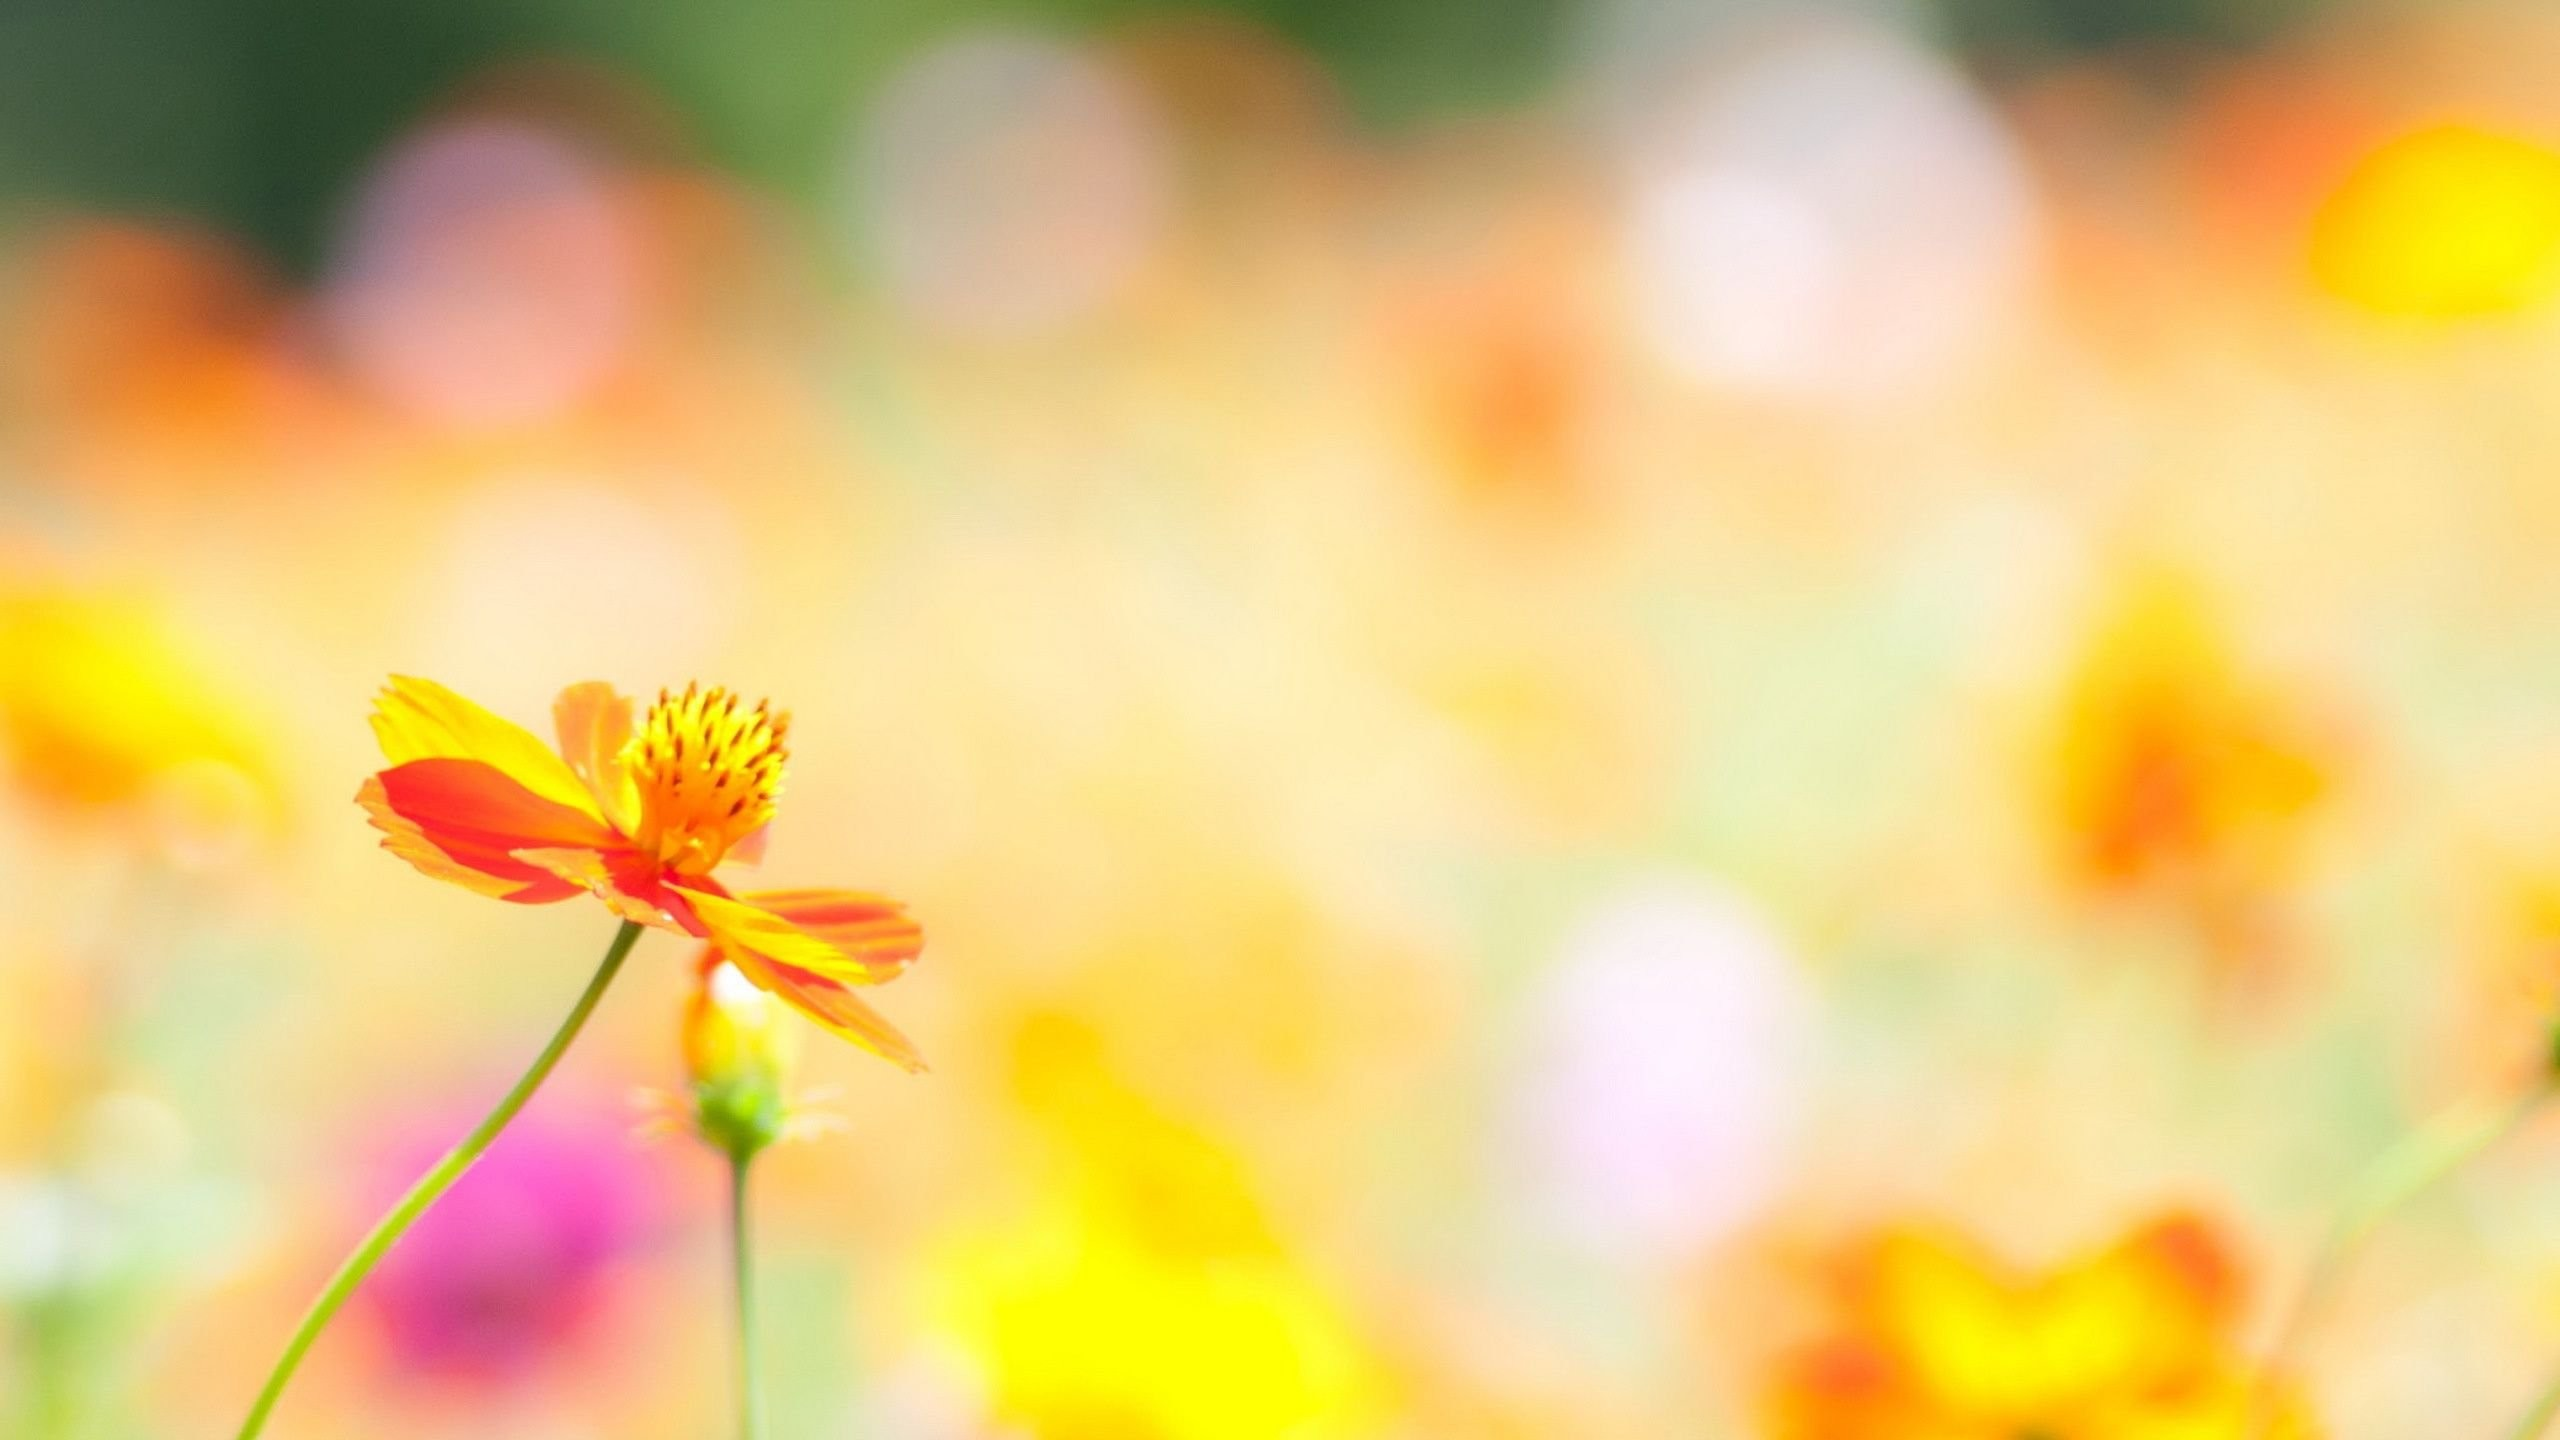 Res: 2560x1440, Summer Flower Pictures HD Wallpapers